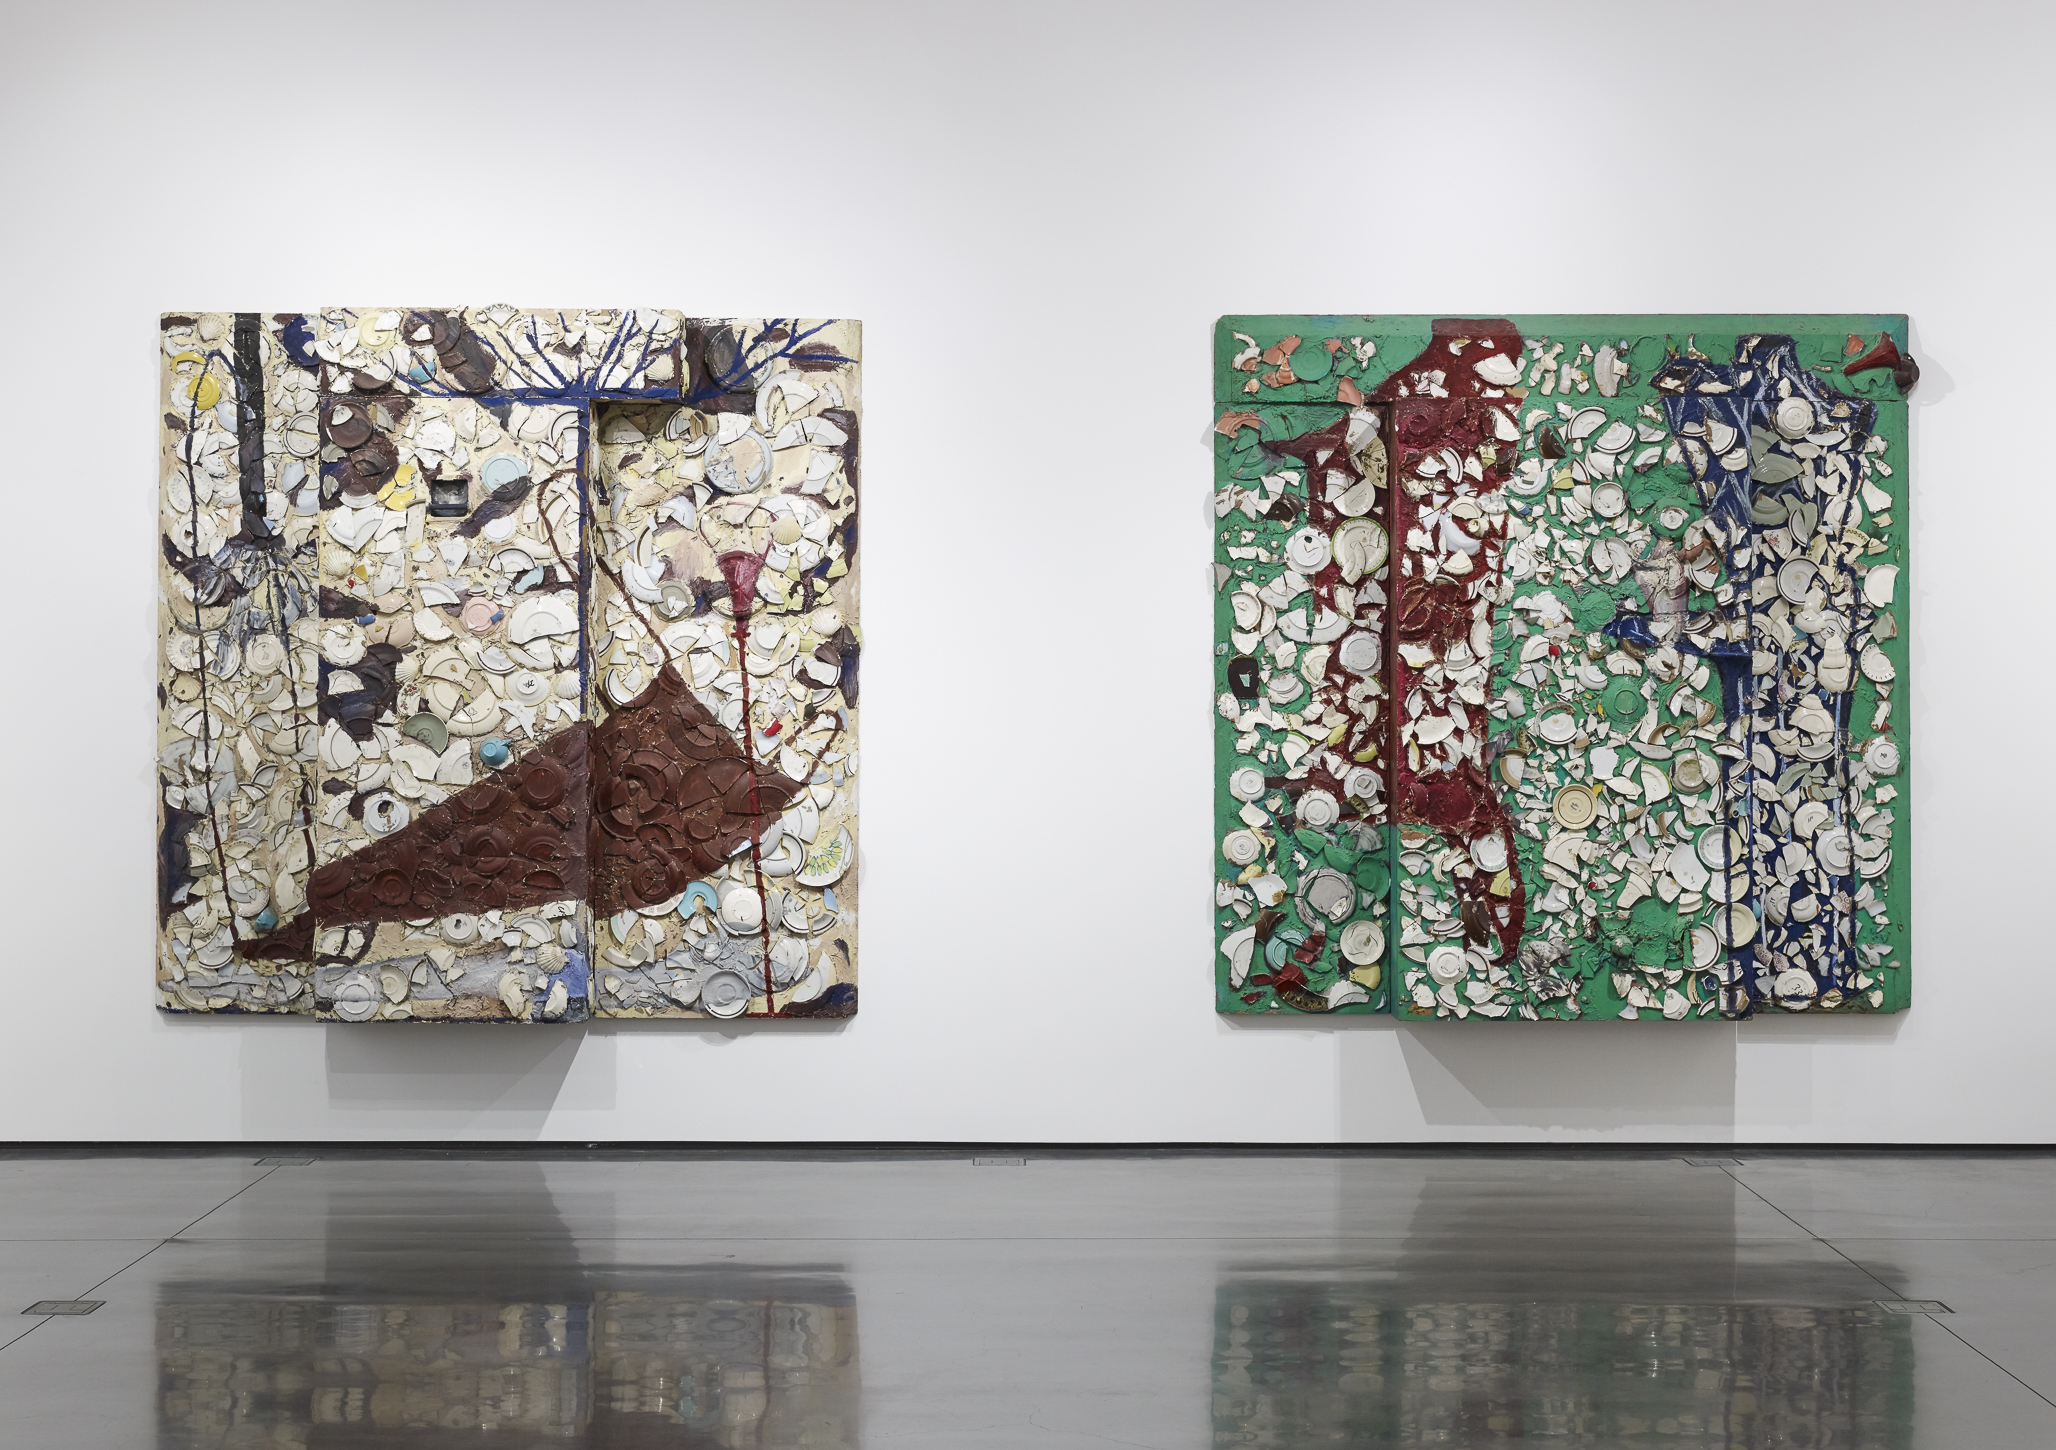 Installation view: Julian Schnabel Plate Paintings 197886, 2016. Photo:  Tony Prikryl